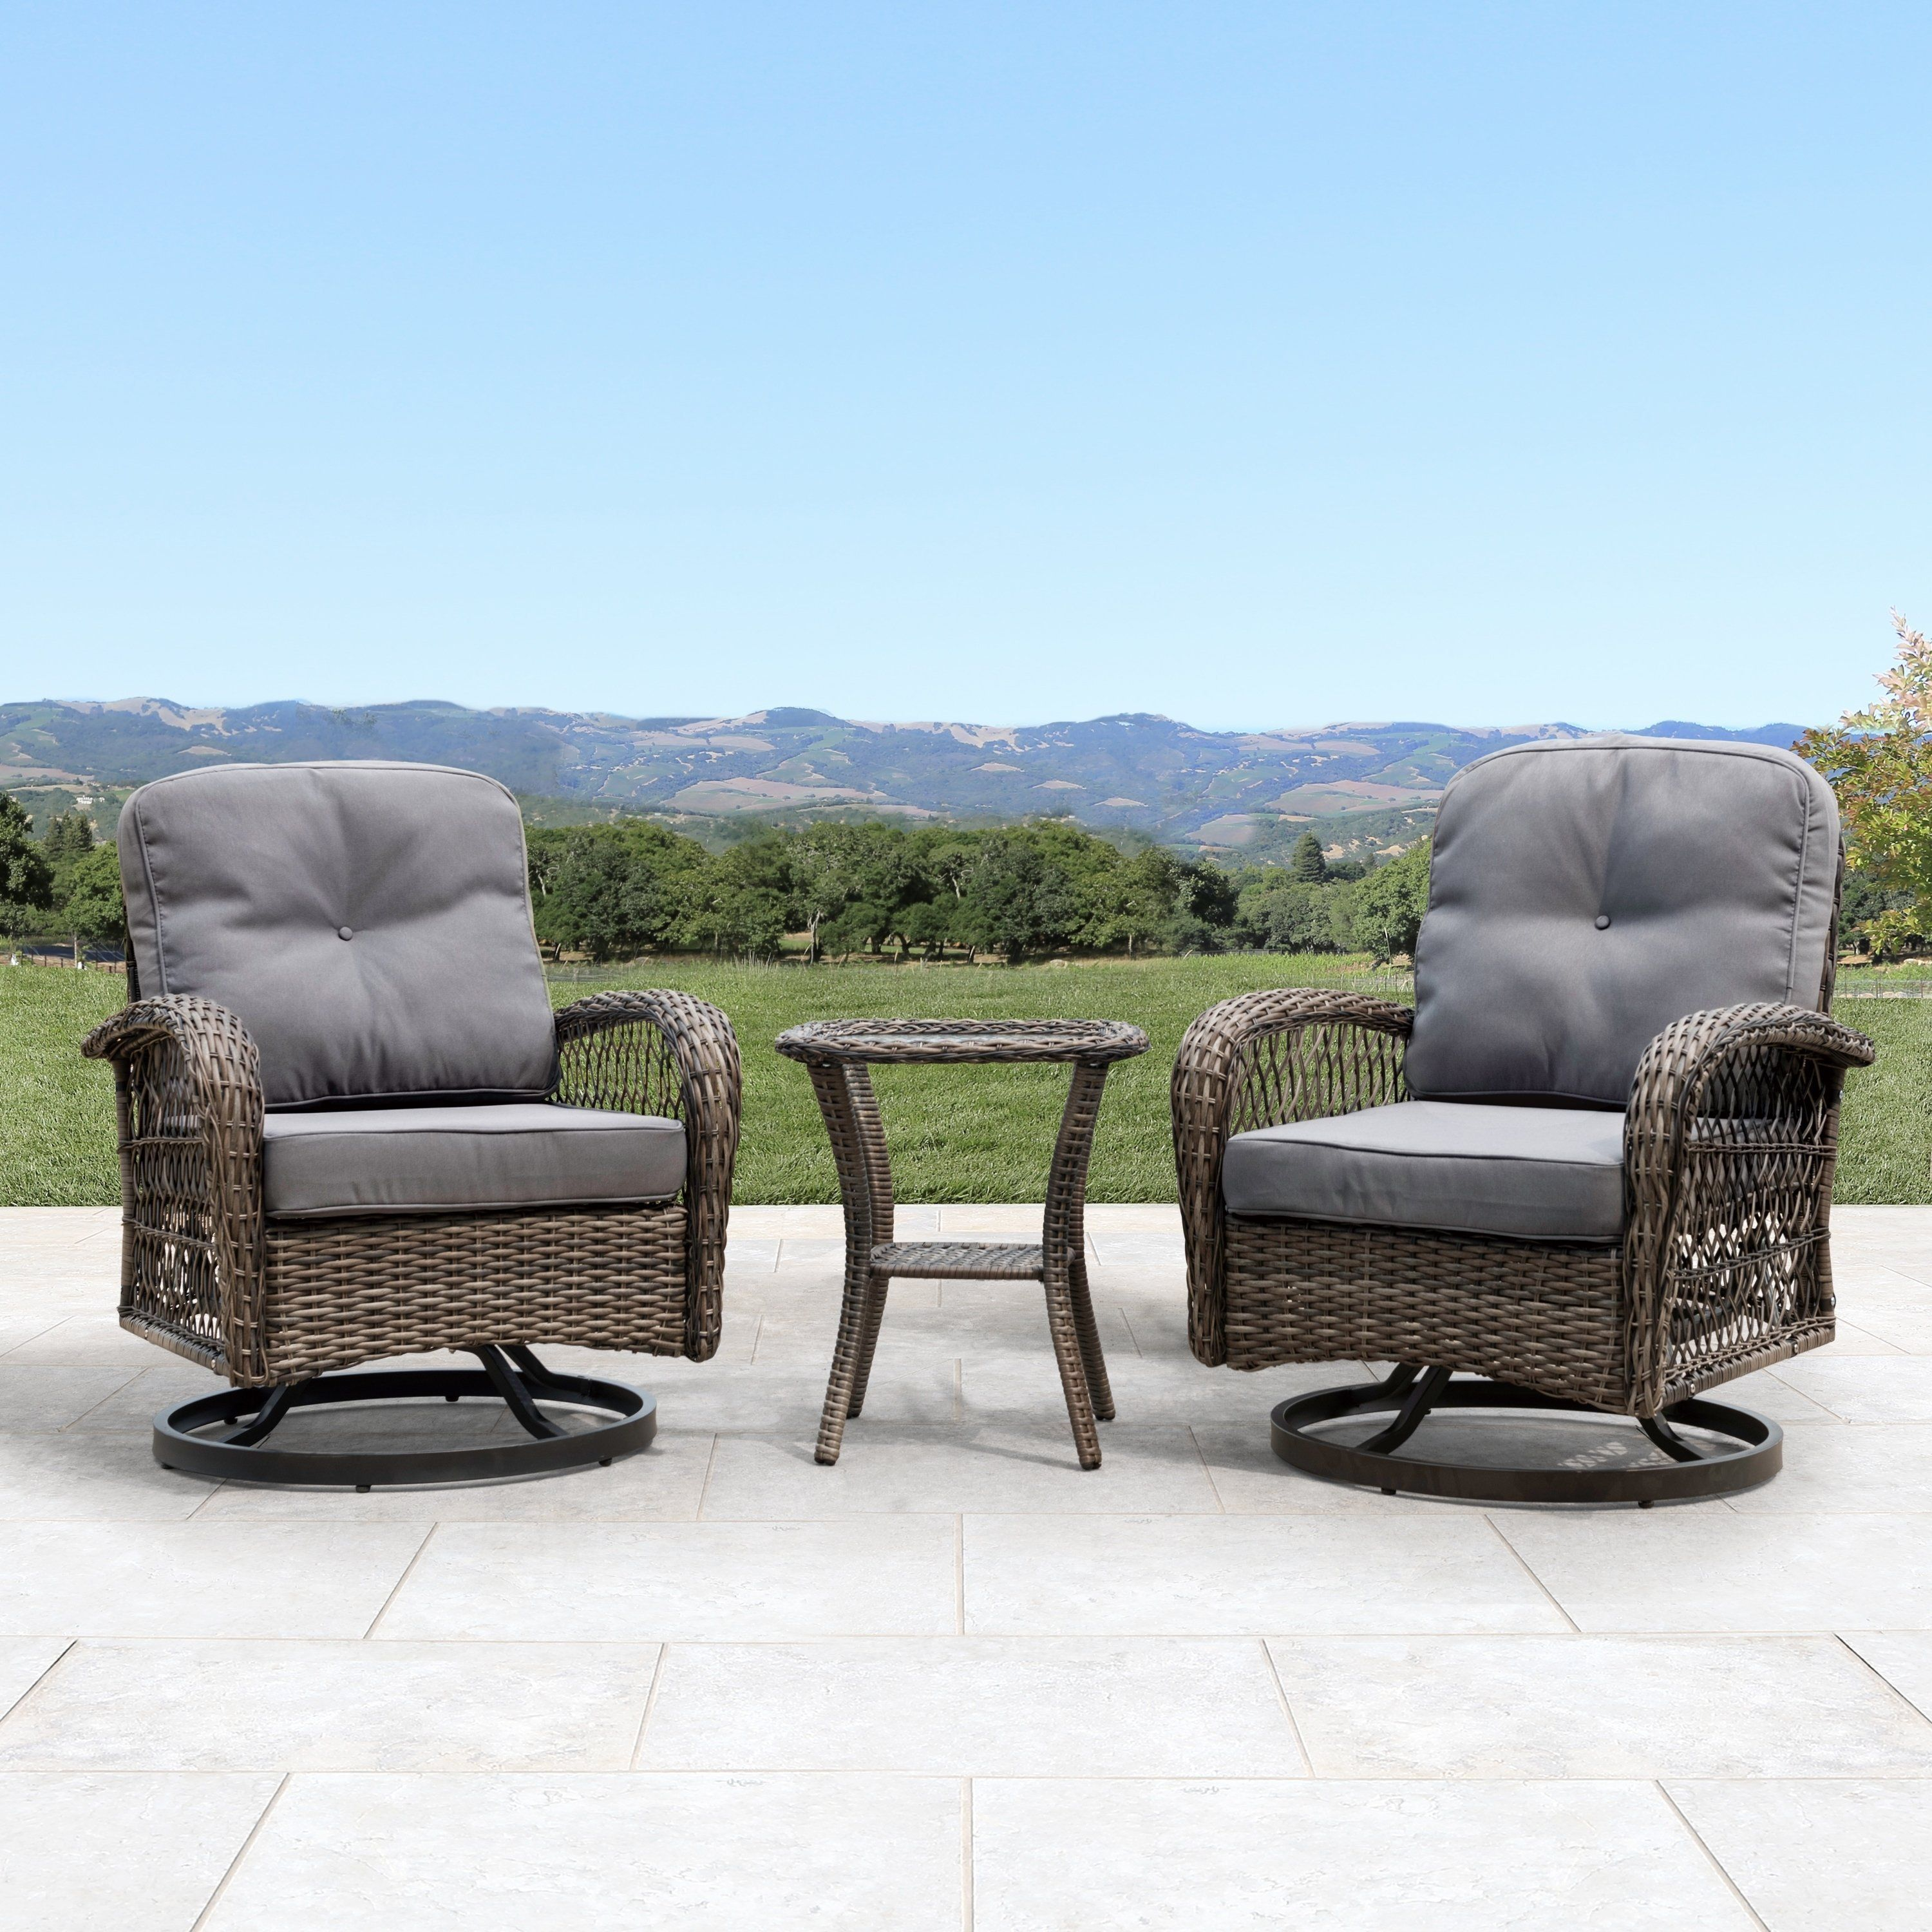 Wondrous Corvus Livorno Outdoor 3 Piece Wicker Chat Set With Swivel Caraccident5 Cool Chair Designs And Ideas Caraccident5Info